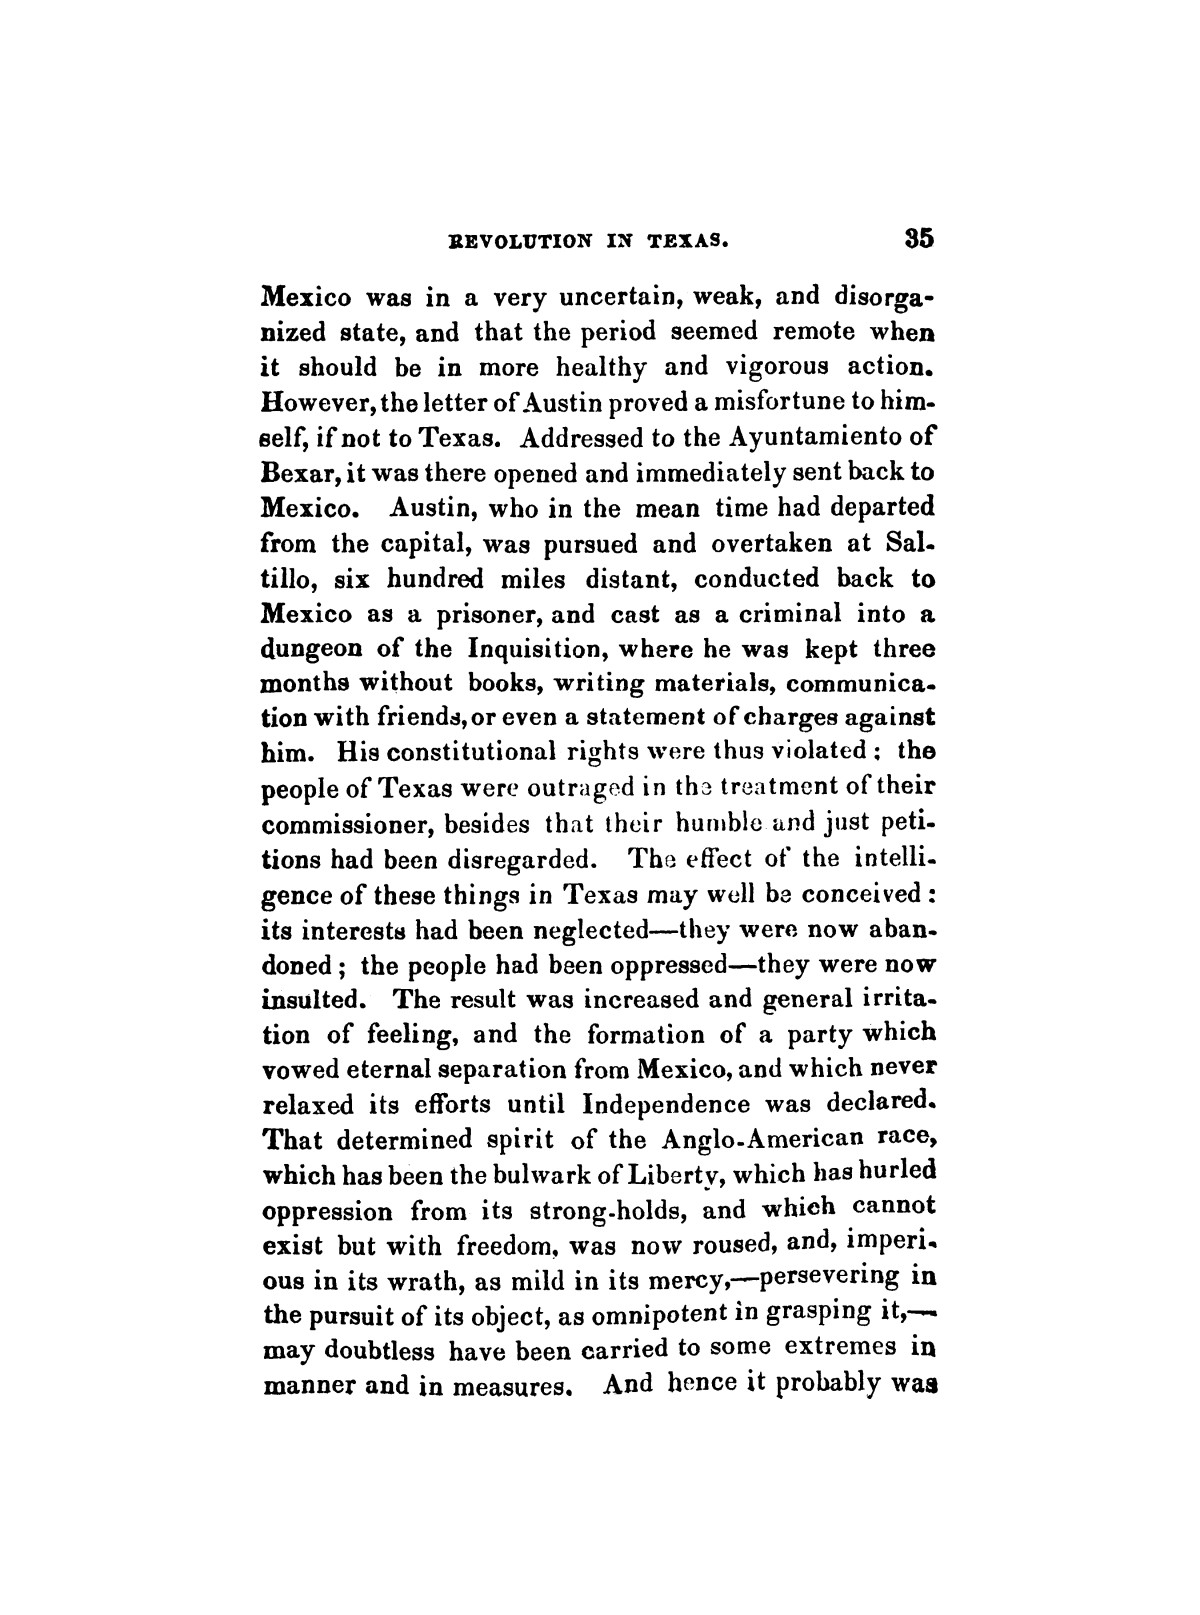 History of the revolution in Texas, particularly of the war of 1835 & '36; together with the latest geographical, topographical, and statistical accounts of the country, from the most authentic sources. Also, an appendix. By the Rev. C. Newell.                                                                                                      [Sequence #]: 47 of 227